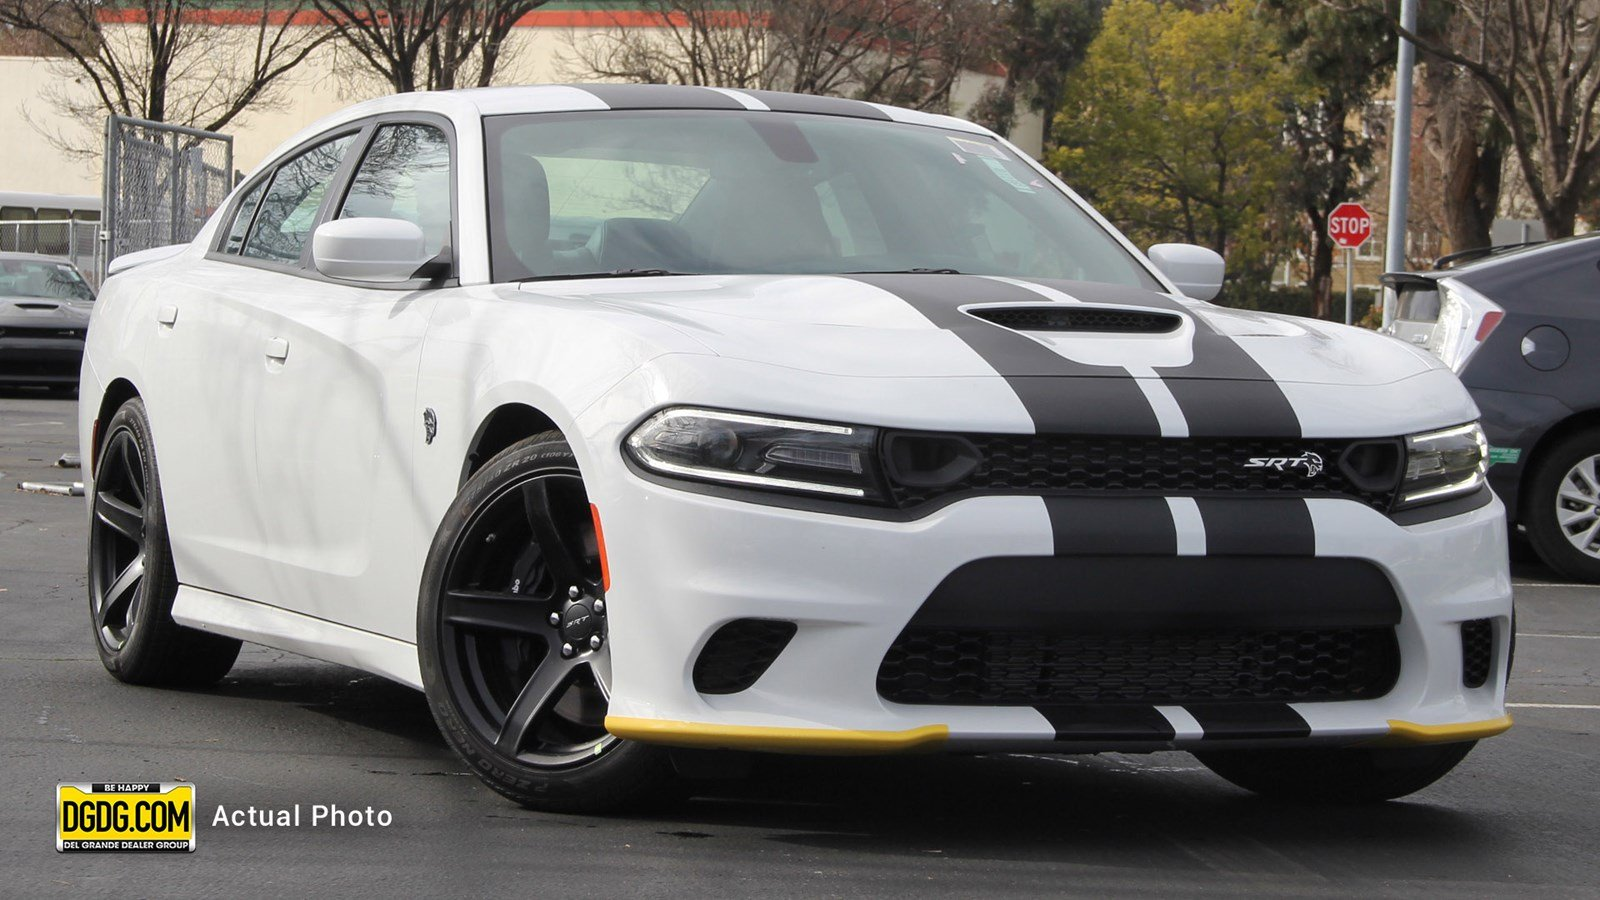 46 The Best 2019 Dodge Charger Srt8 Hellcat Specs and Review